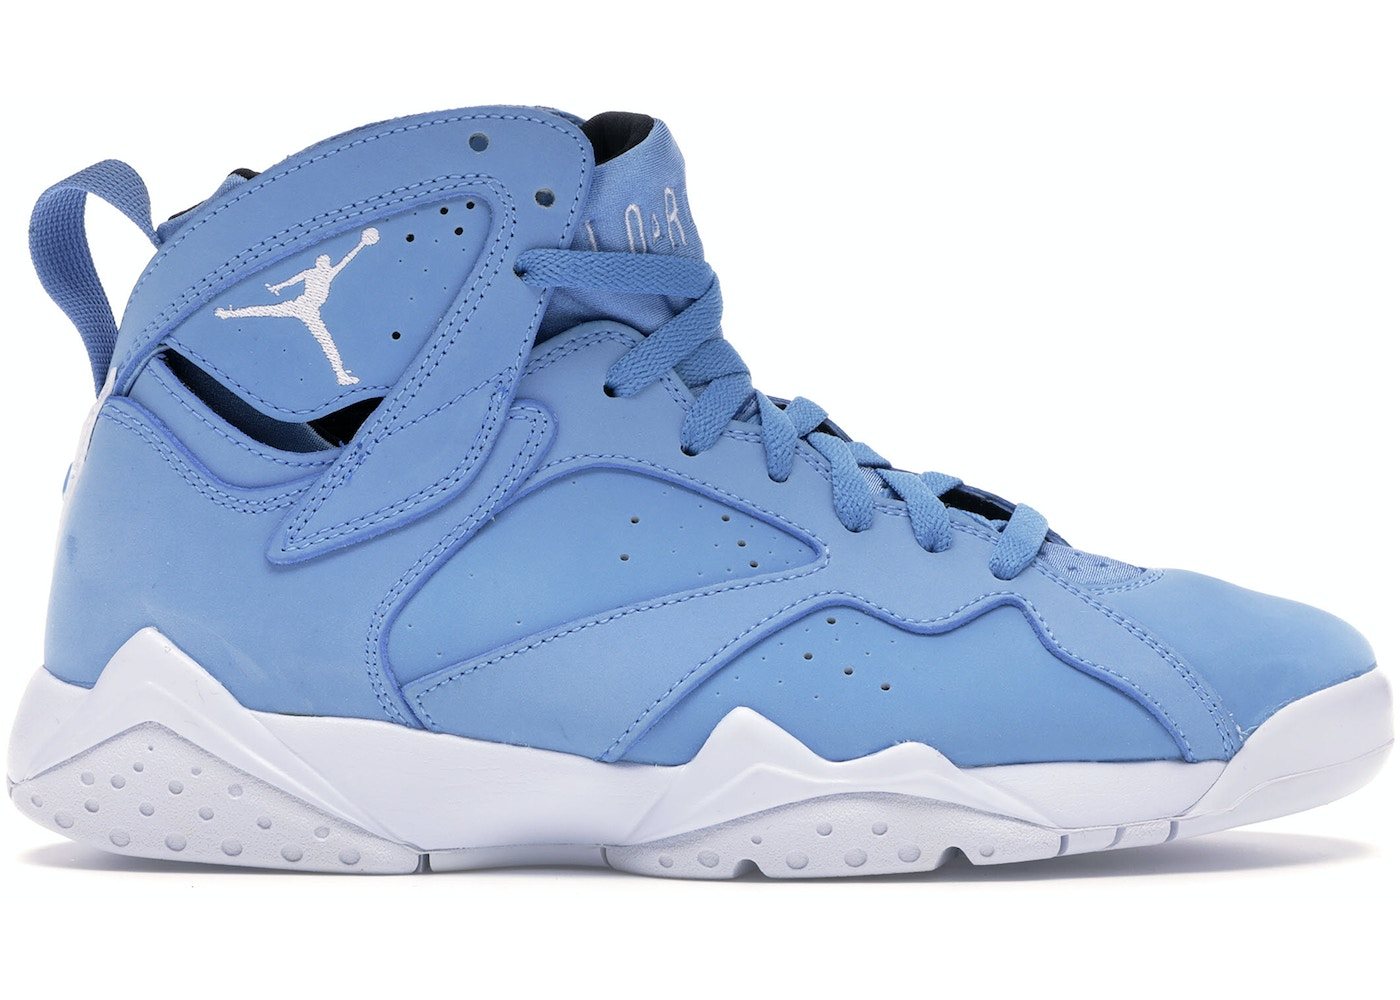 outlet store 490e6 a46ab Buy Air Jordan 7 Shoes   Deadstock Sneakers